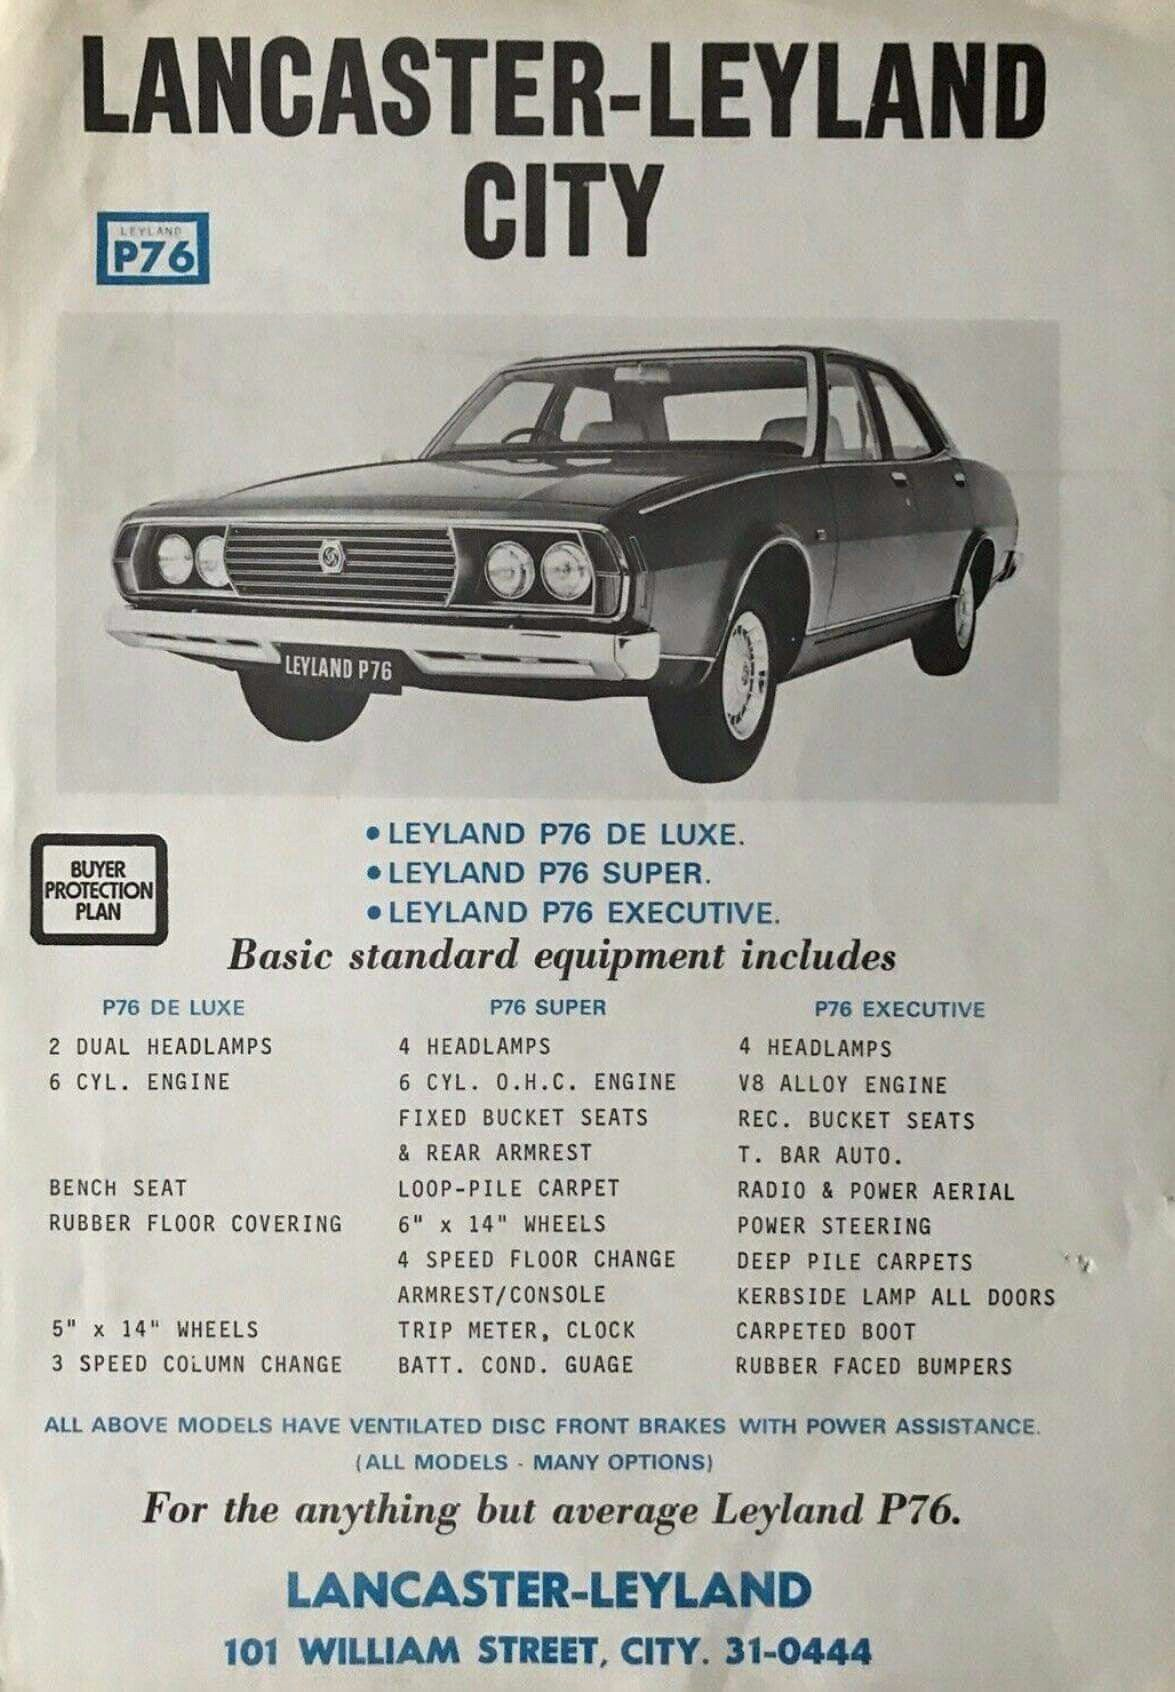 Pin by Charles Geer on Auto advertising and misc Used